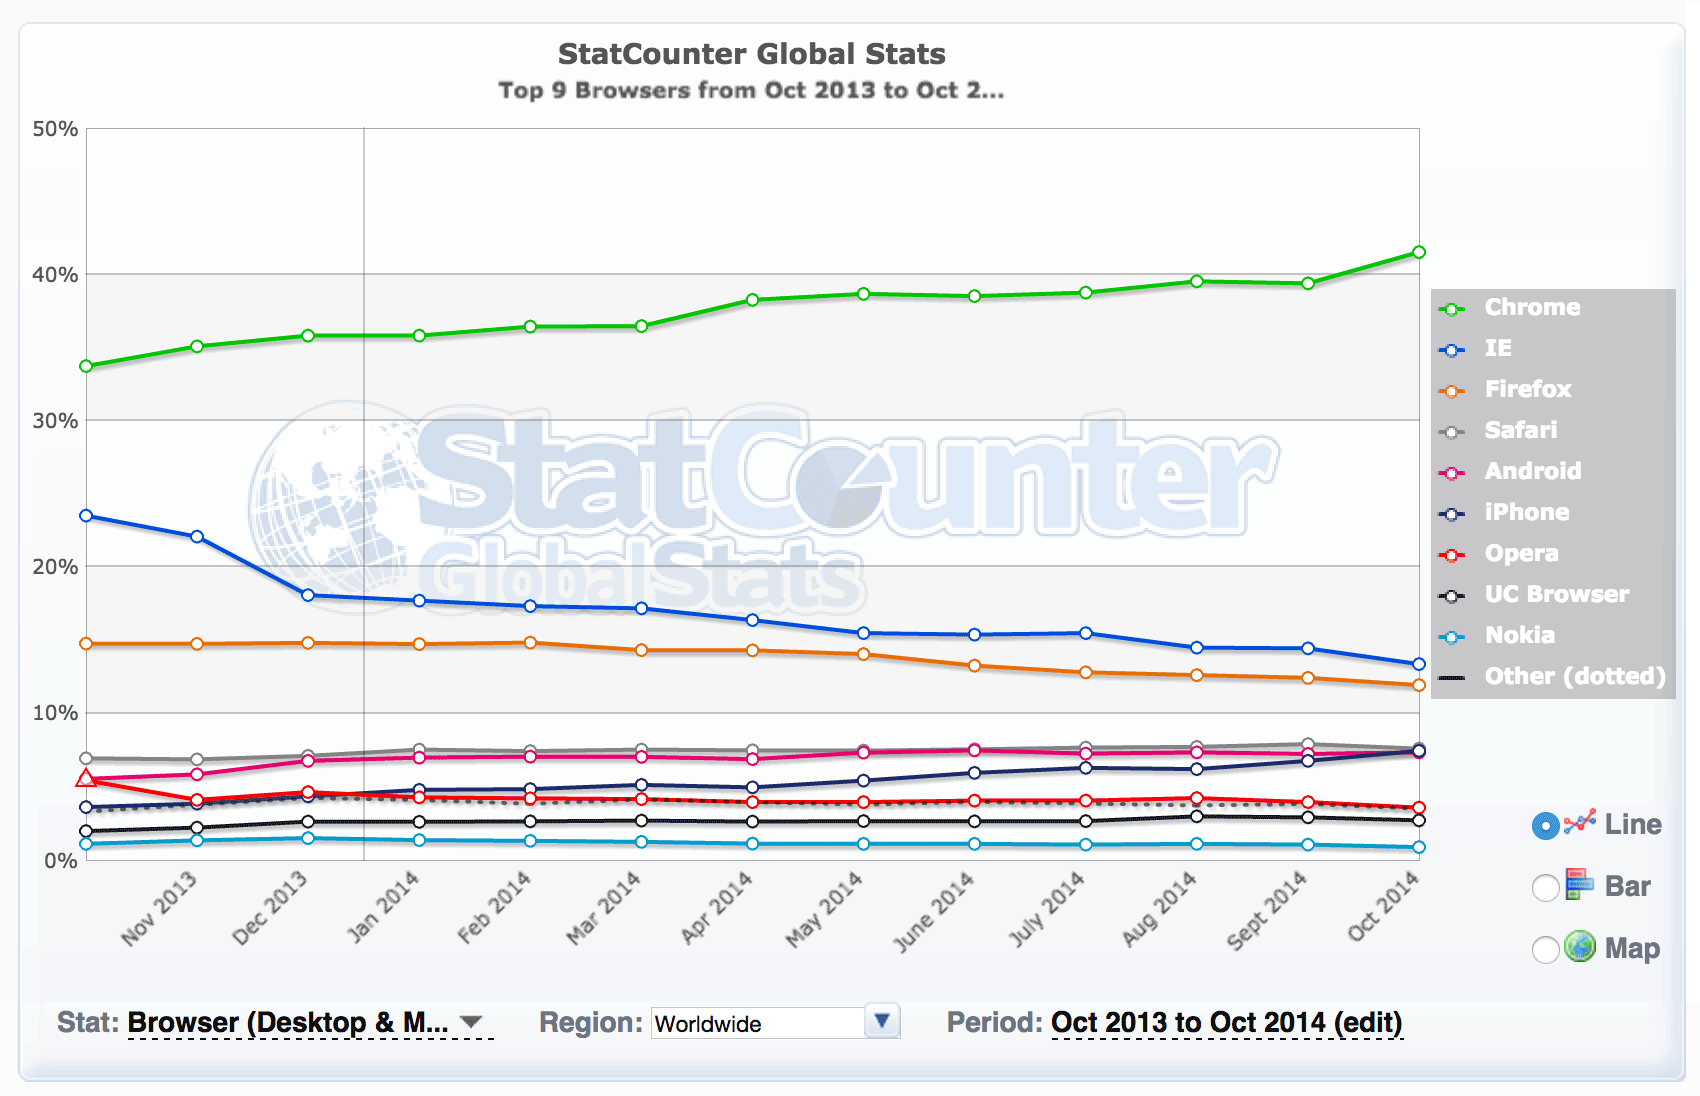 StatCounter, which measures page views globally across a network of Web sites, puts Chrome in first place in browser usage.